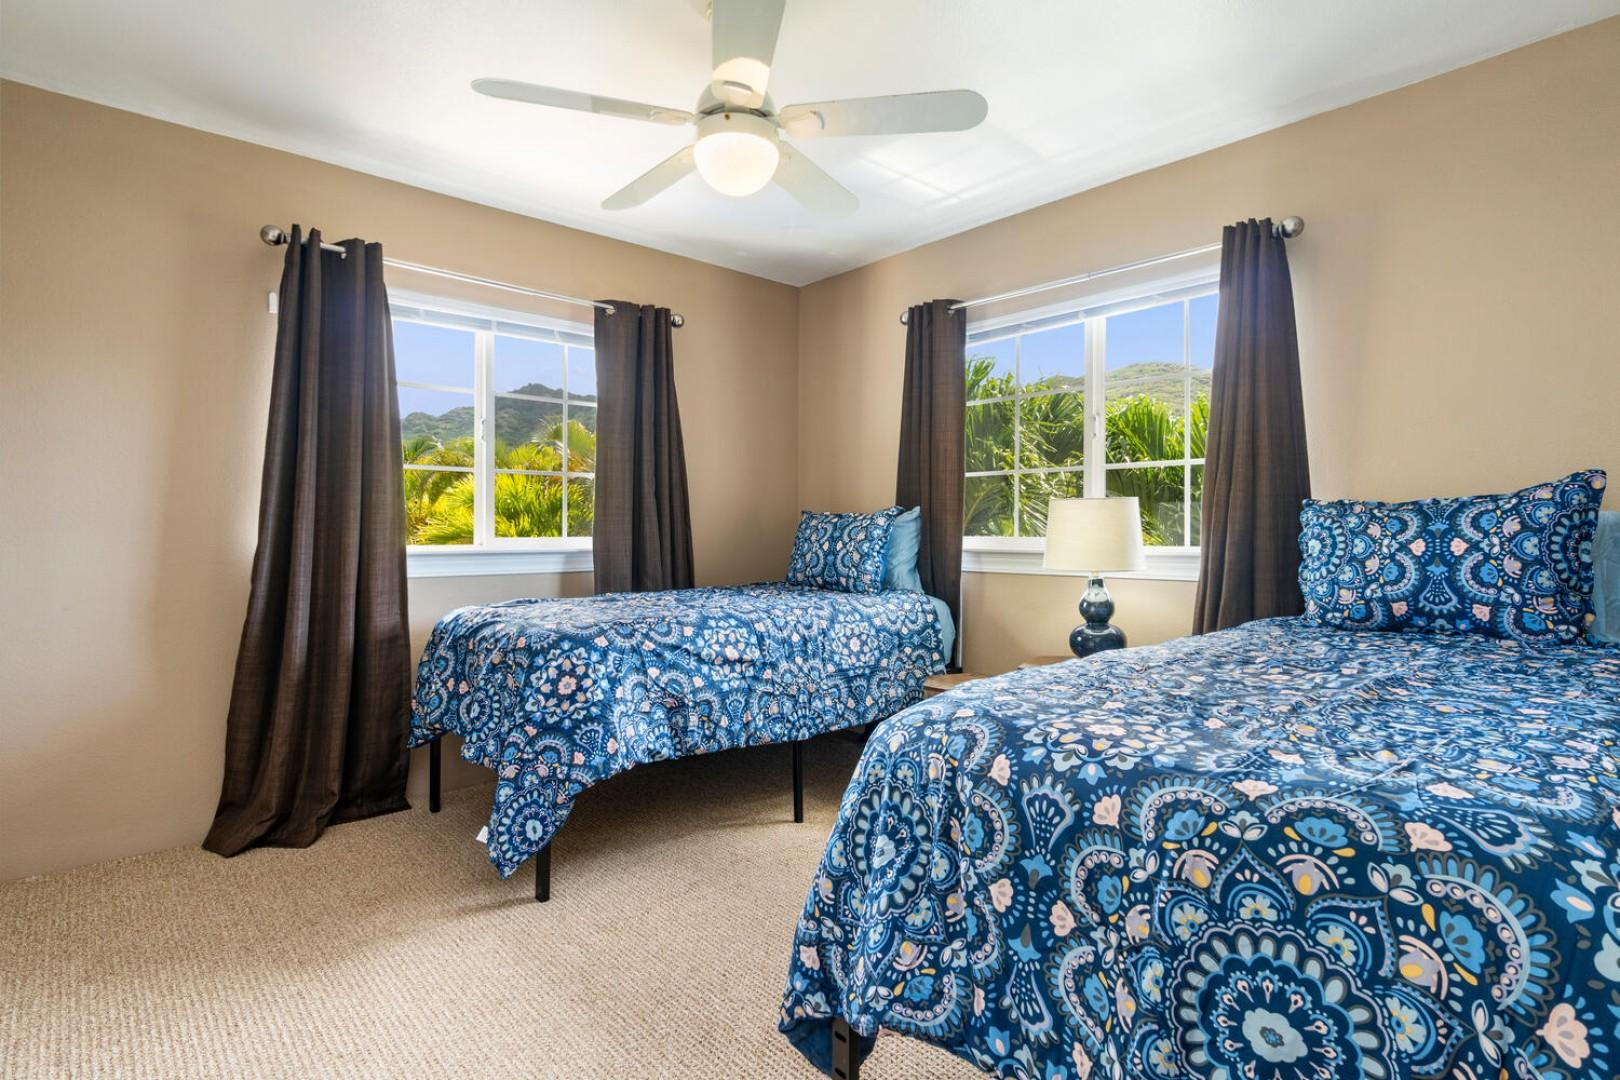 Bedroom 4, two twin beds